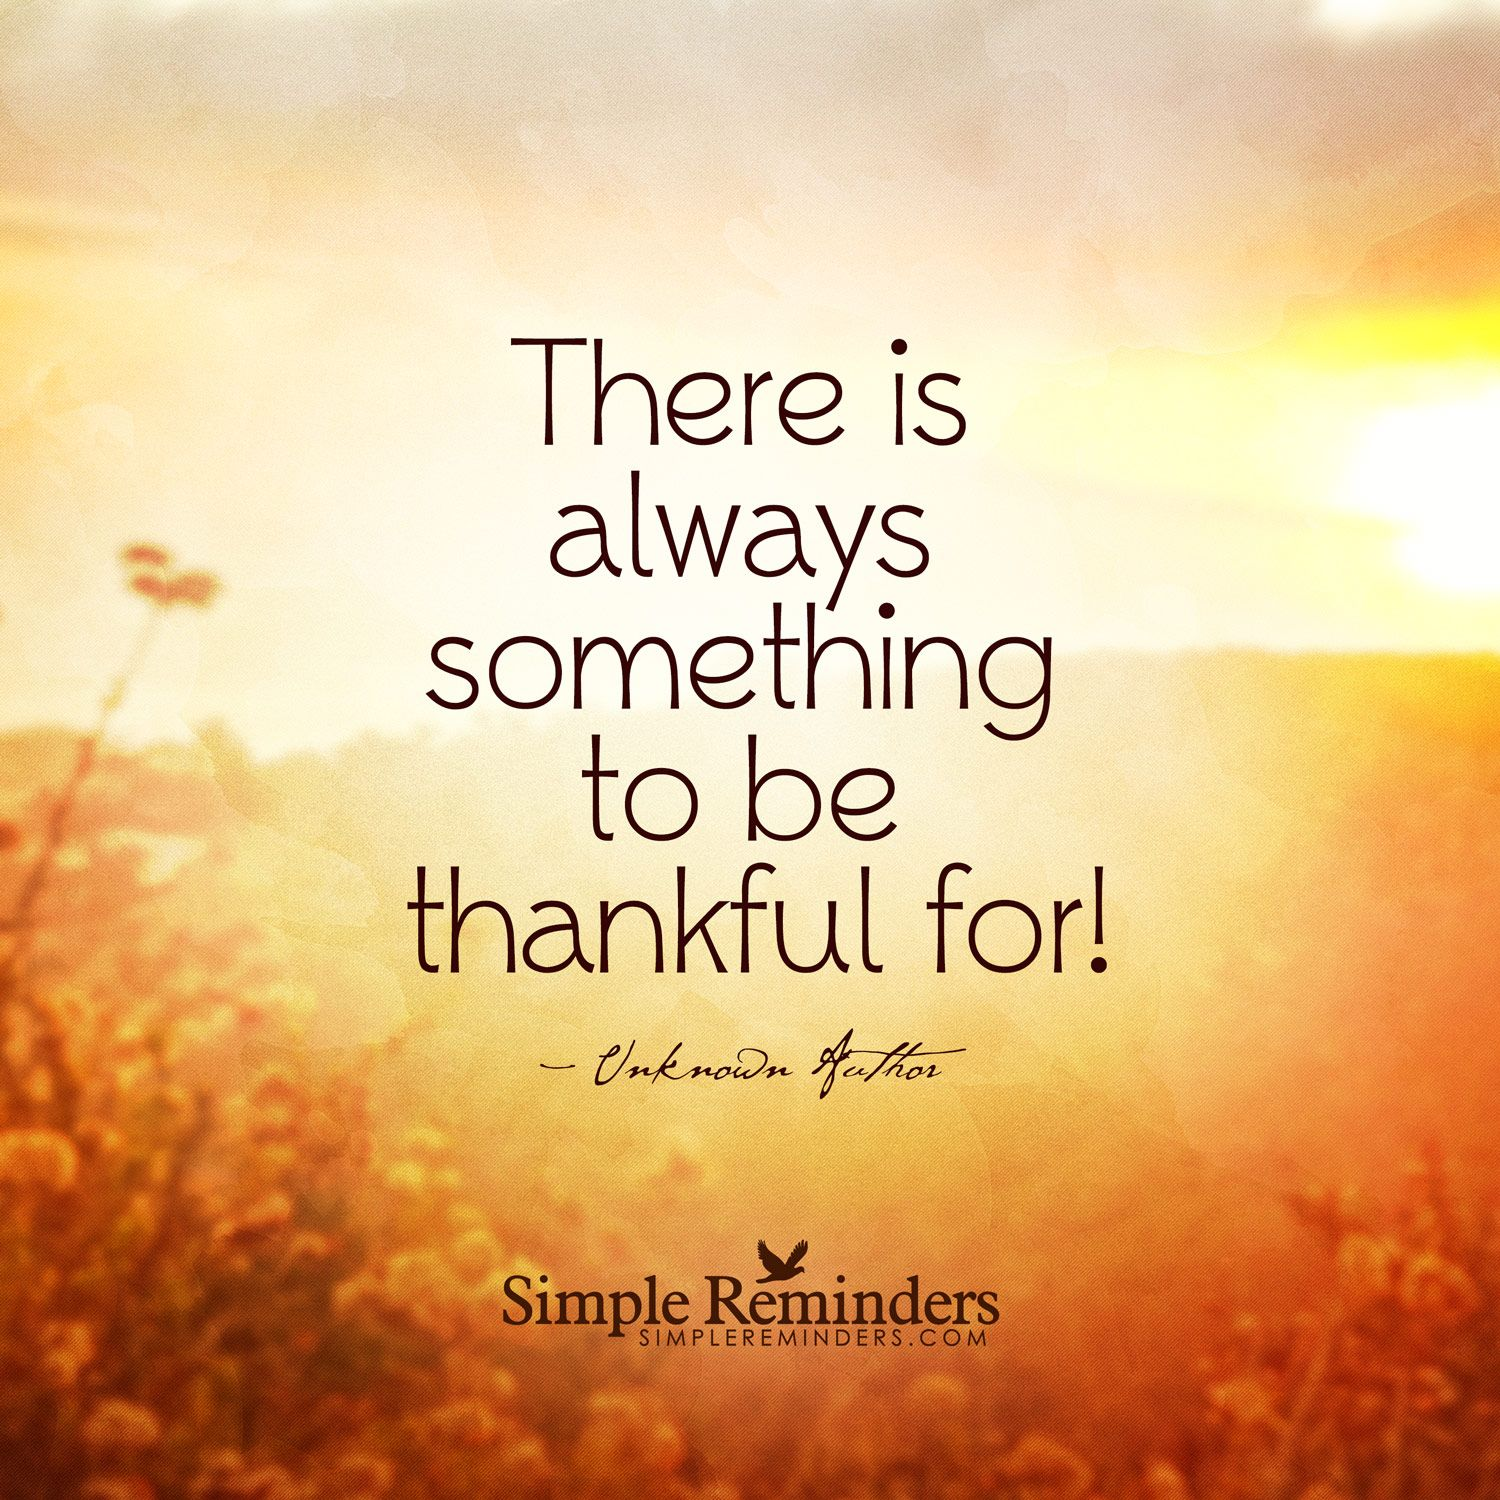 There is always something to be thankful for!— Unknown